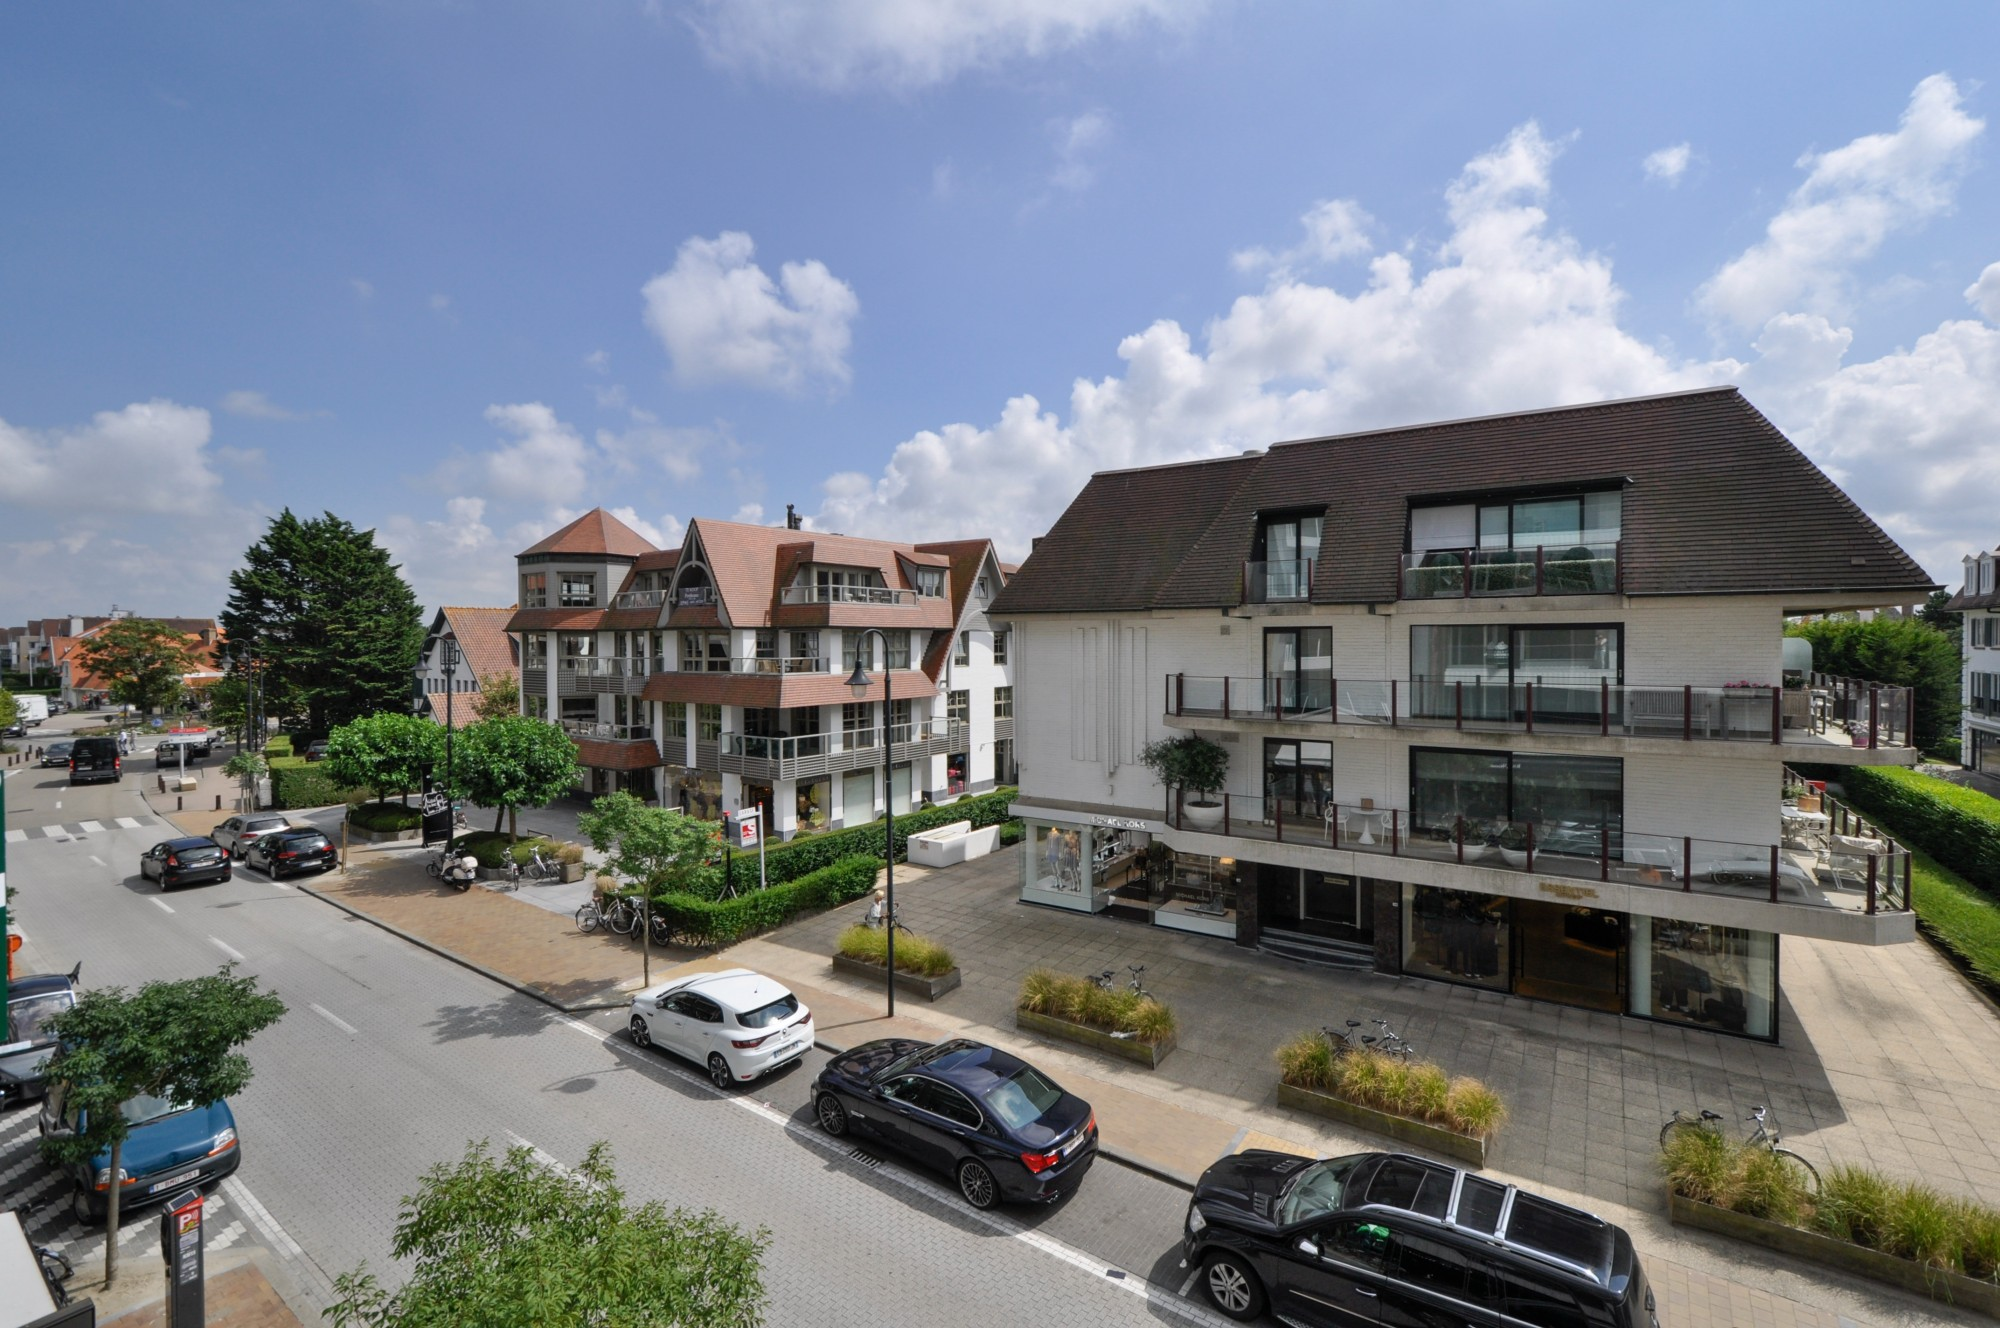 Ventes appartement t2 f2 knokke zoute kustlaan aan for Agence immobiliere knokke